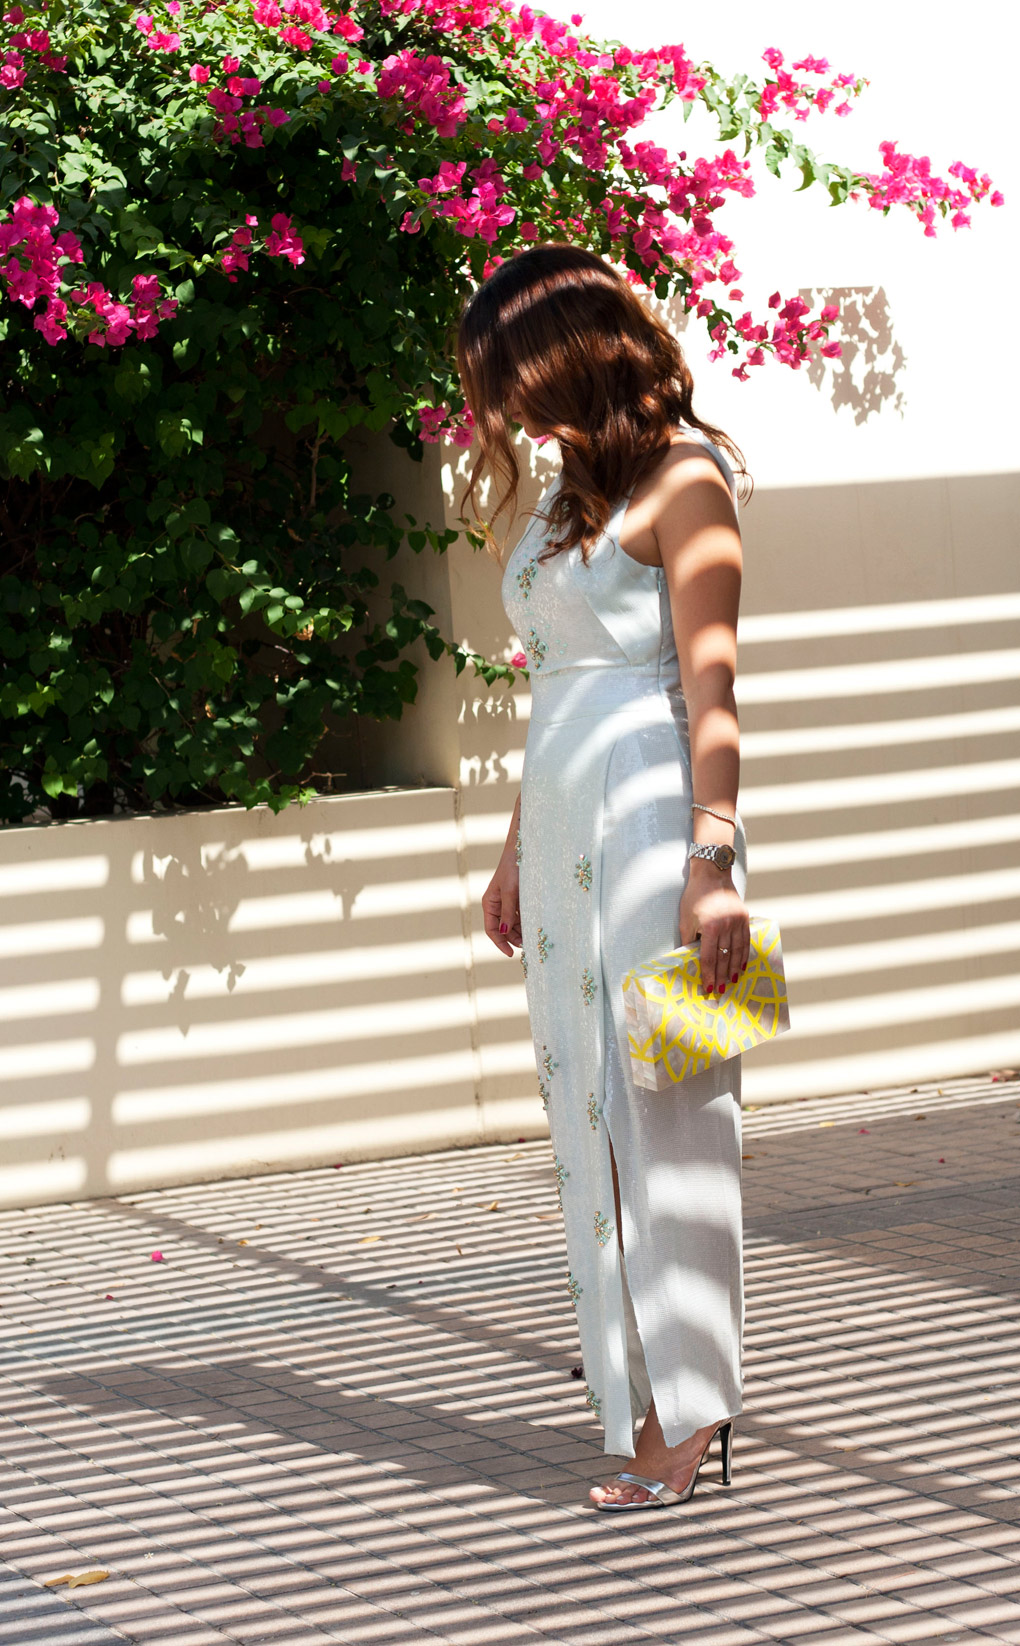 Lyla_Loves_Fashion_Toujouri_Dress_Nathalie_Trad_Clutch_Wedding_9238